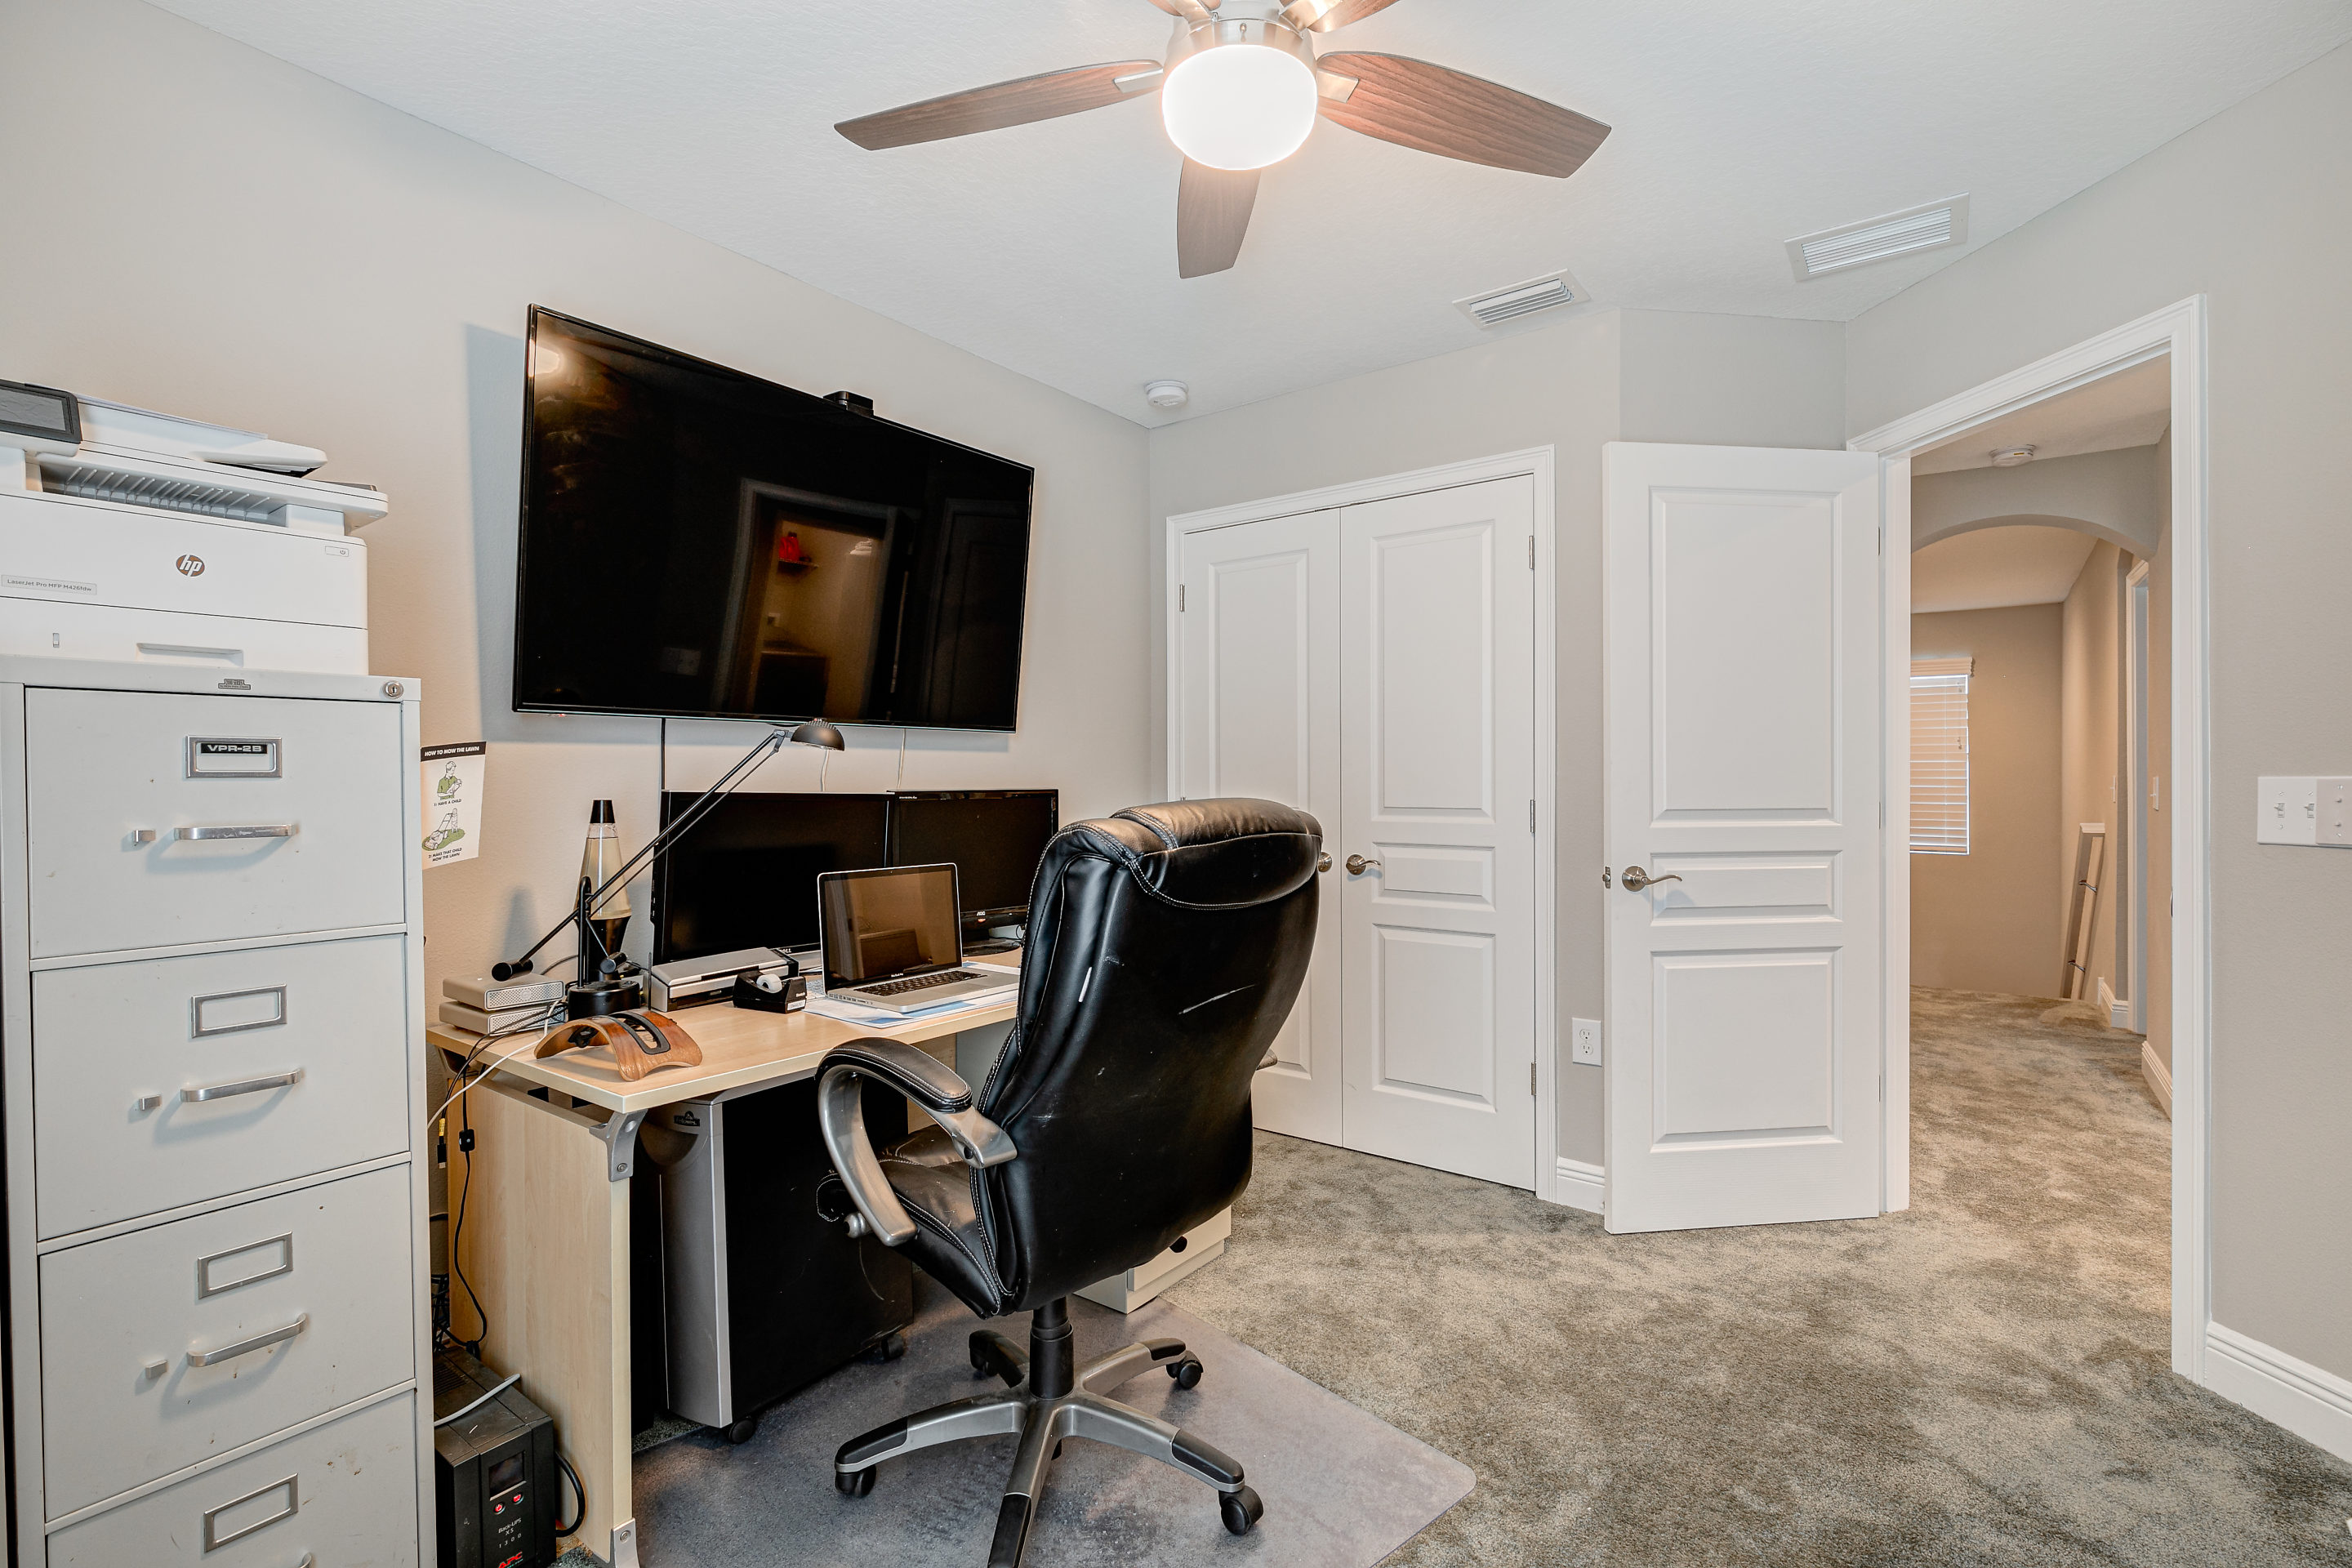 Guest-Bedroom-or-Office-at-406-Chippewa-Ave-Cristan-Fadal